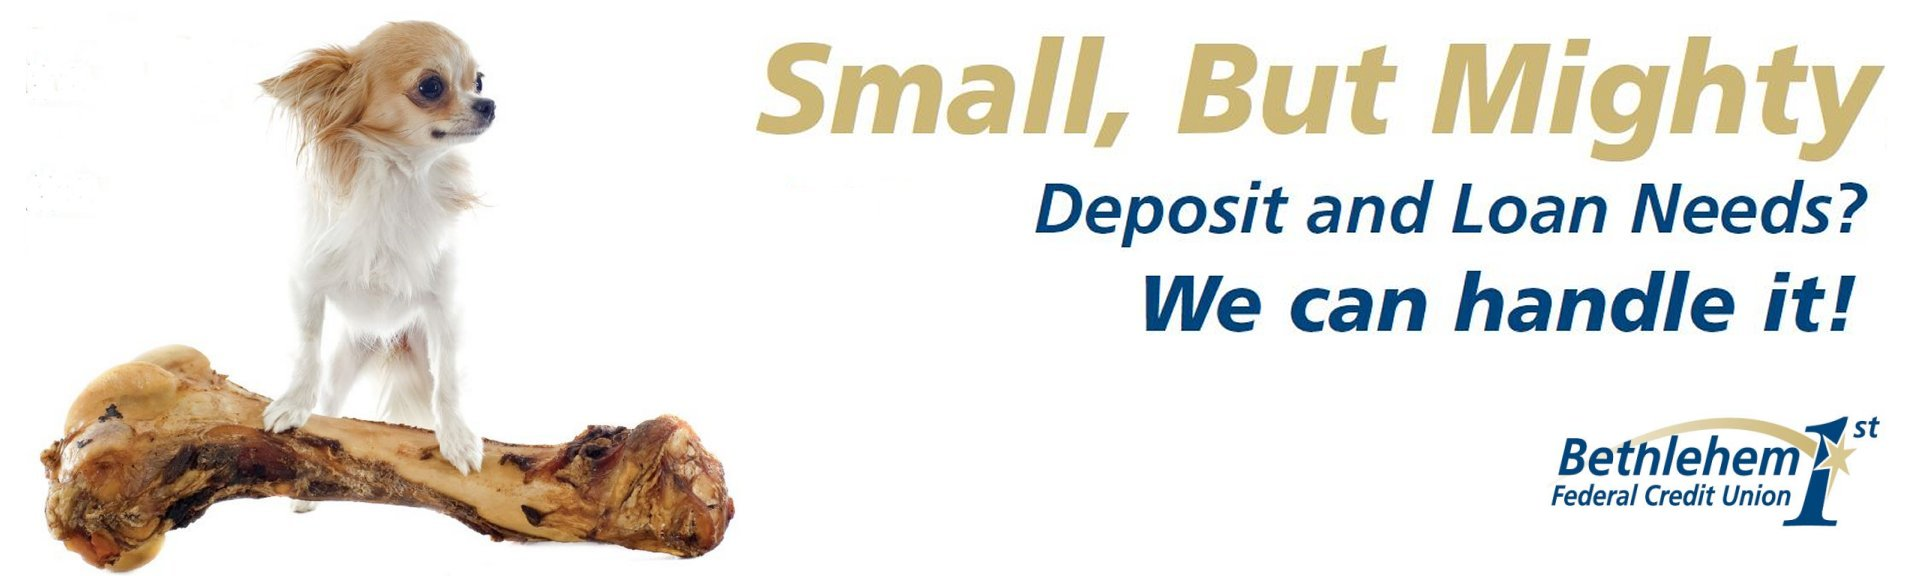 We're small, but mighty, and can handle your deposit and loan needs!